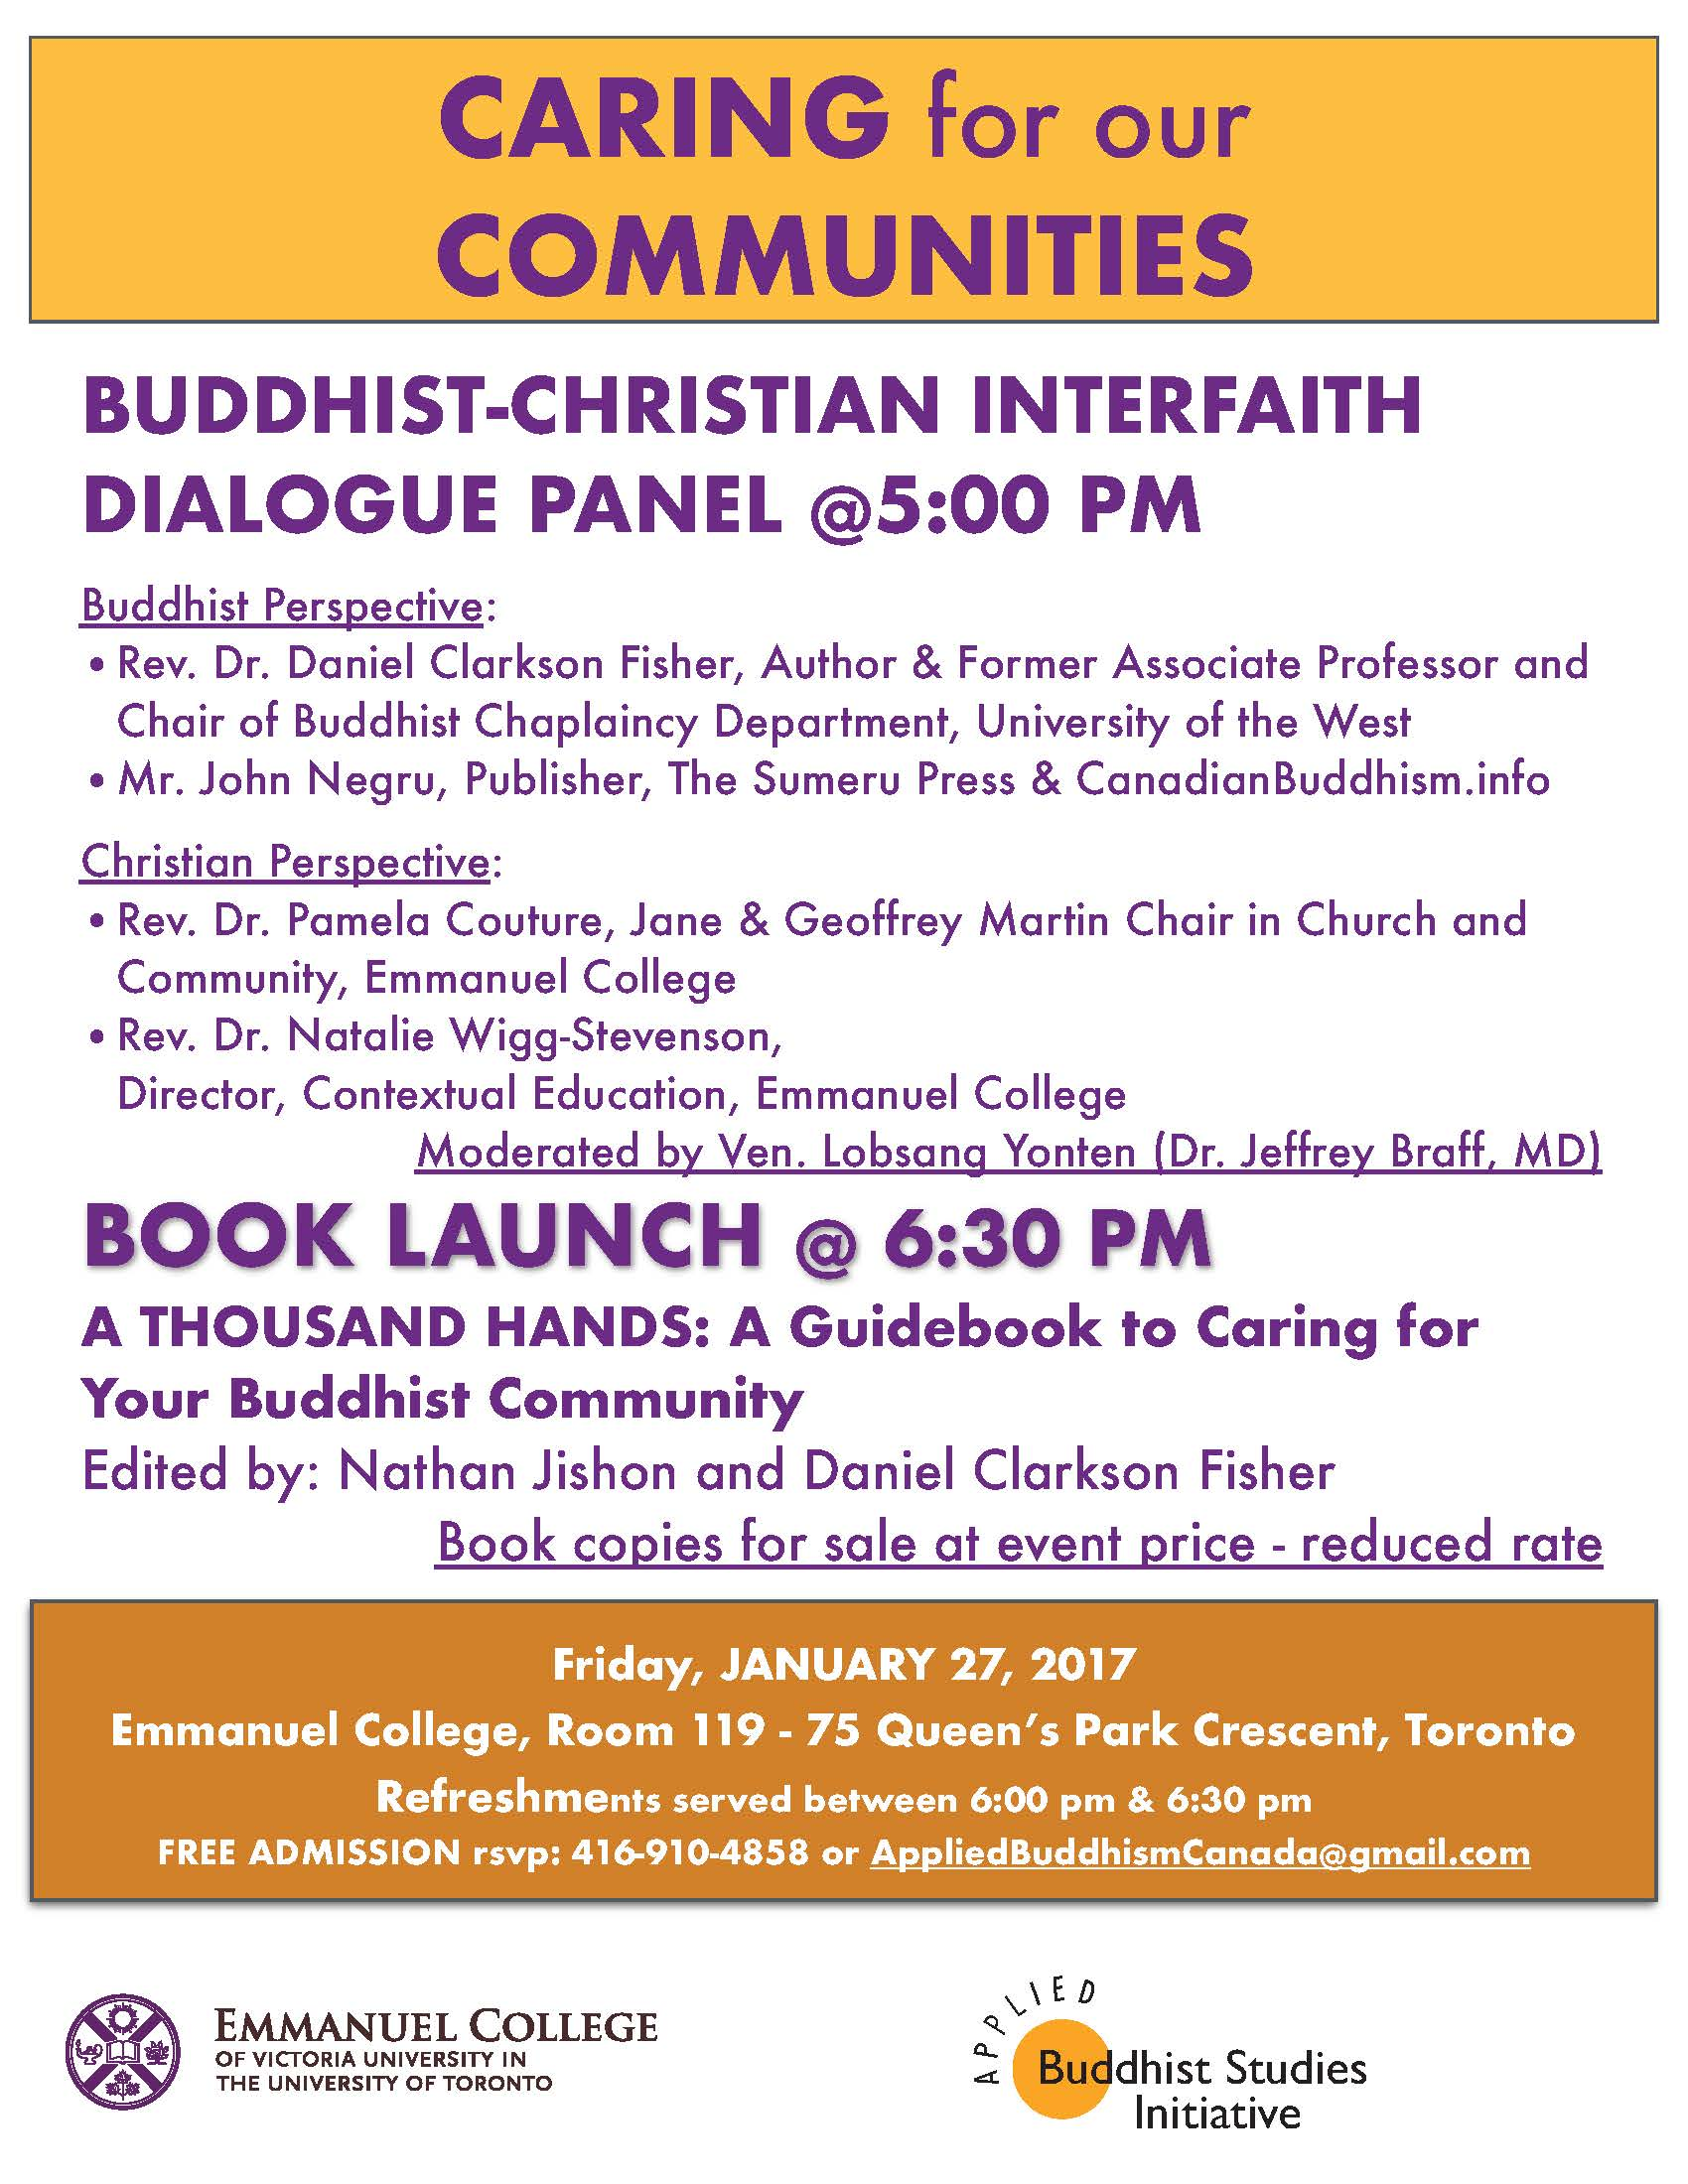 Caring for Cummunities: Buddhist-Christian Interfaith Dialogue Panel and Book Launch